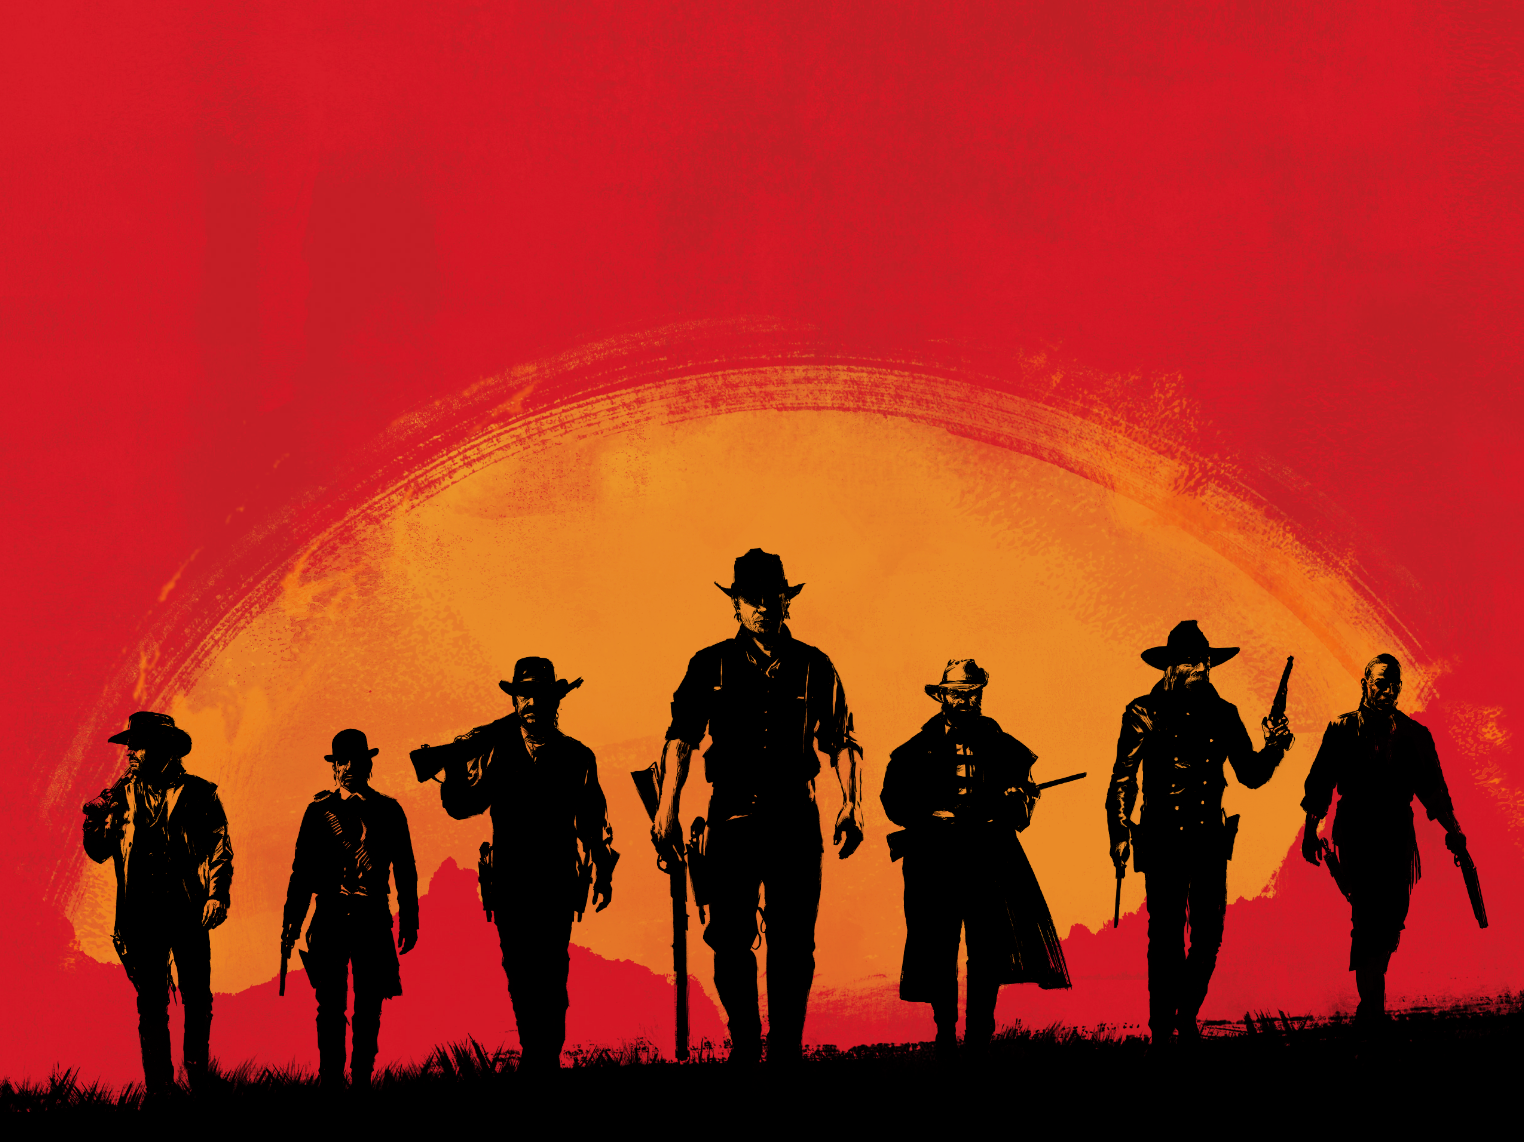 'Red Dead Redemption 2' Release and Trailer Date Confirmed